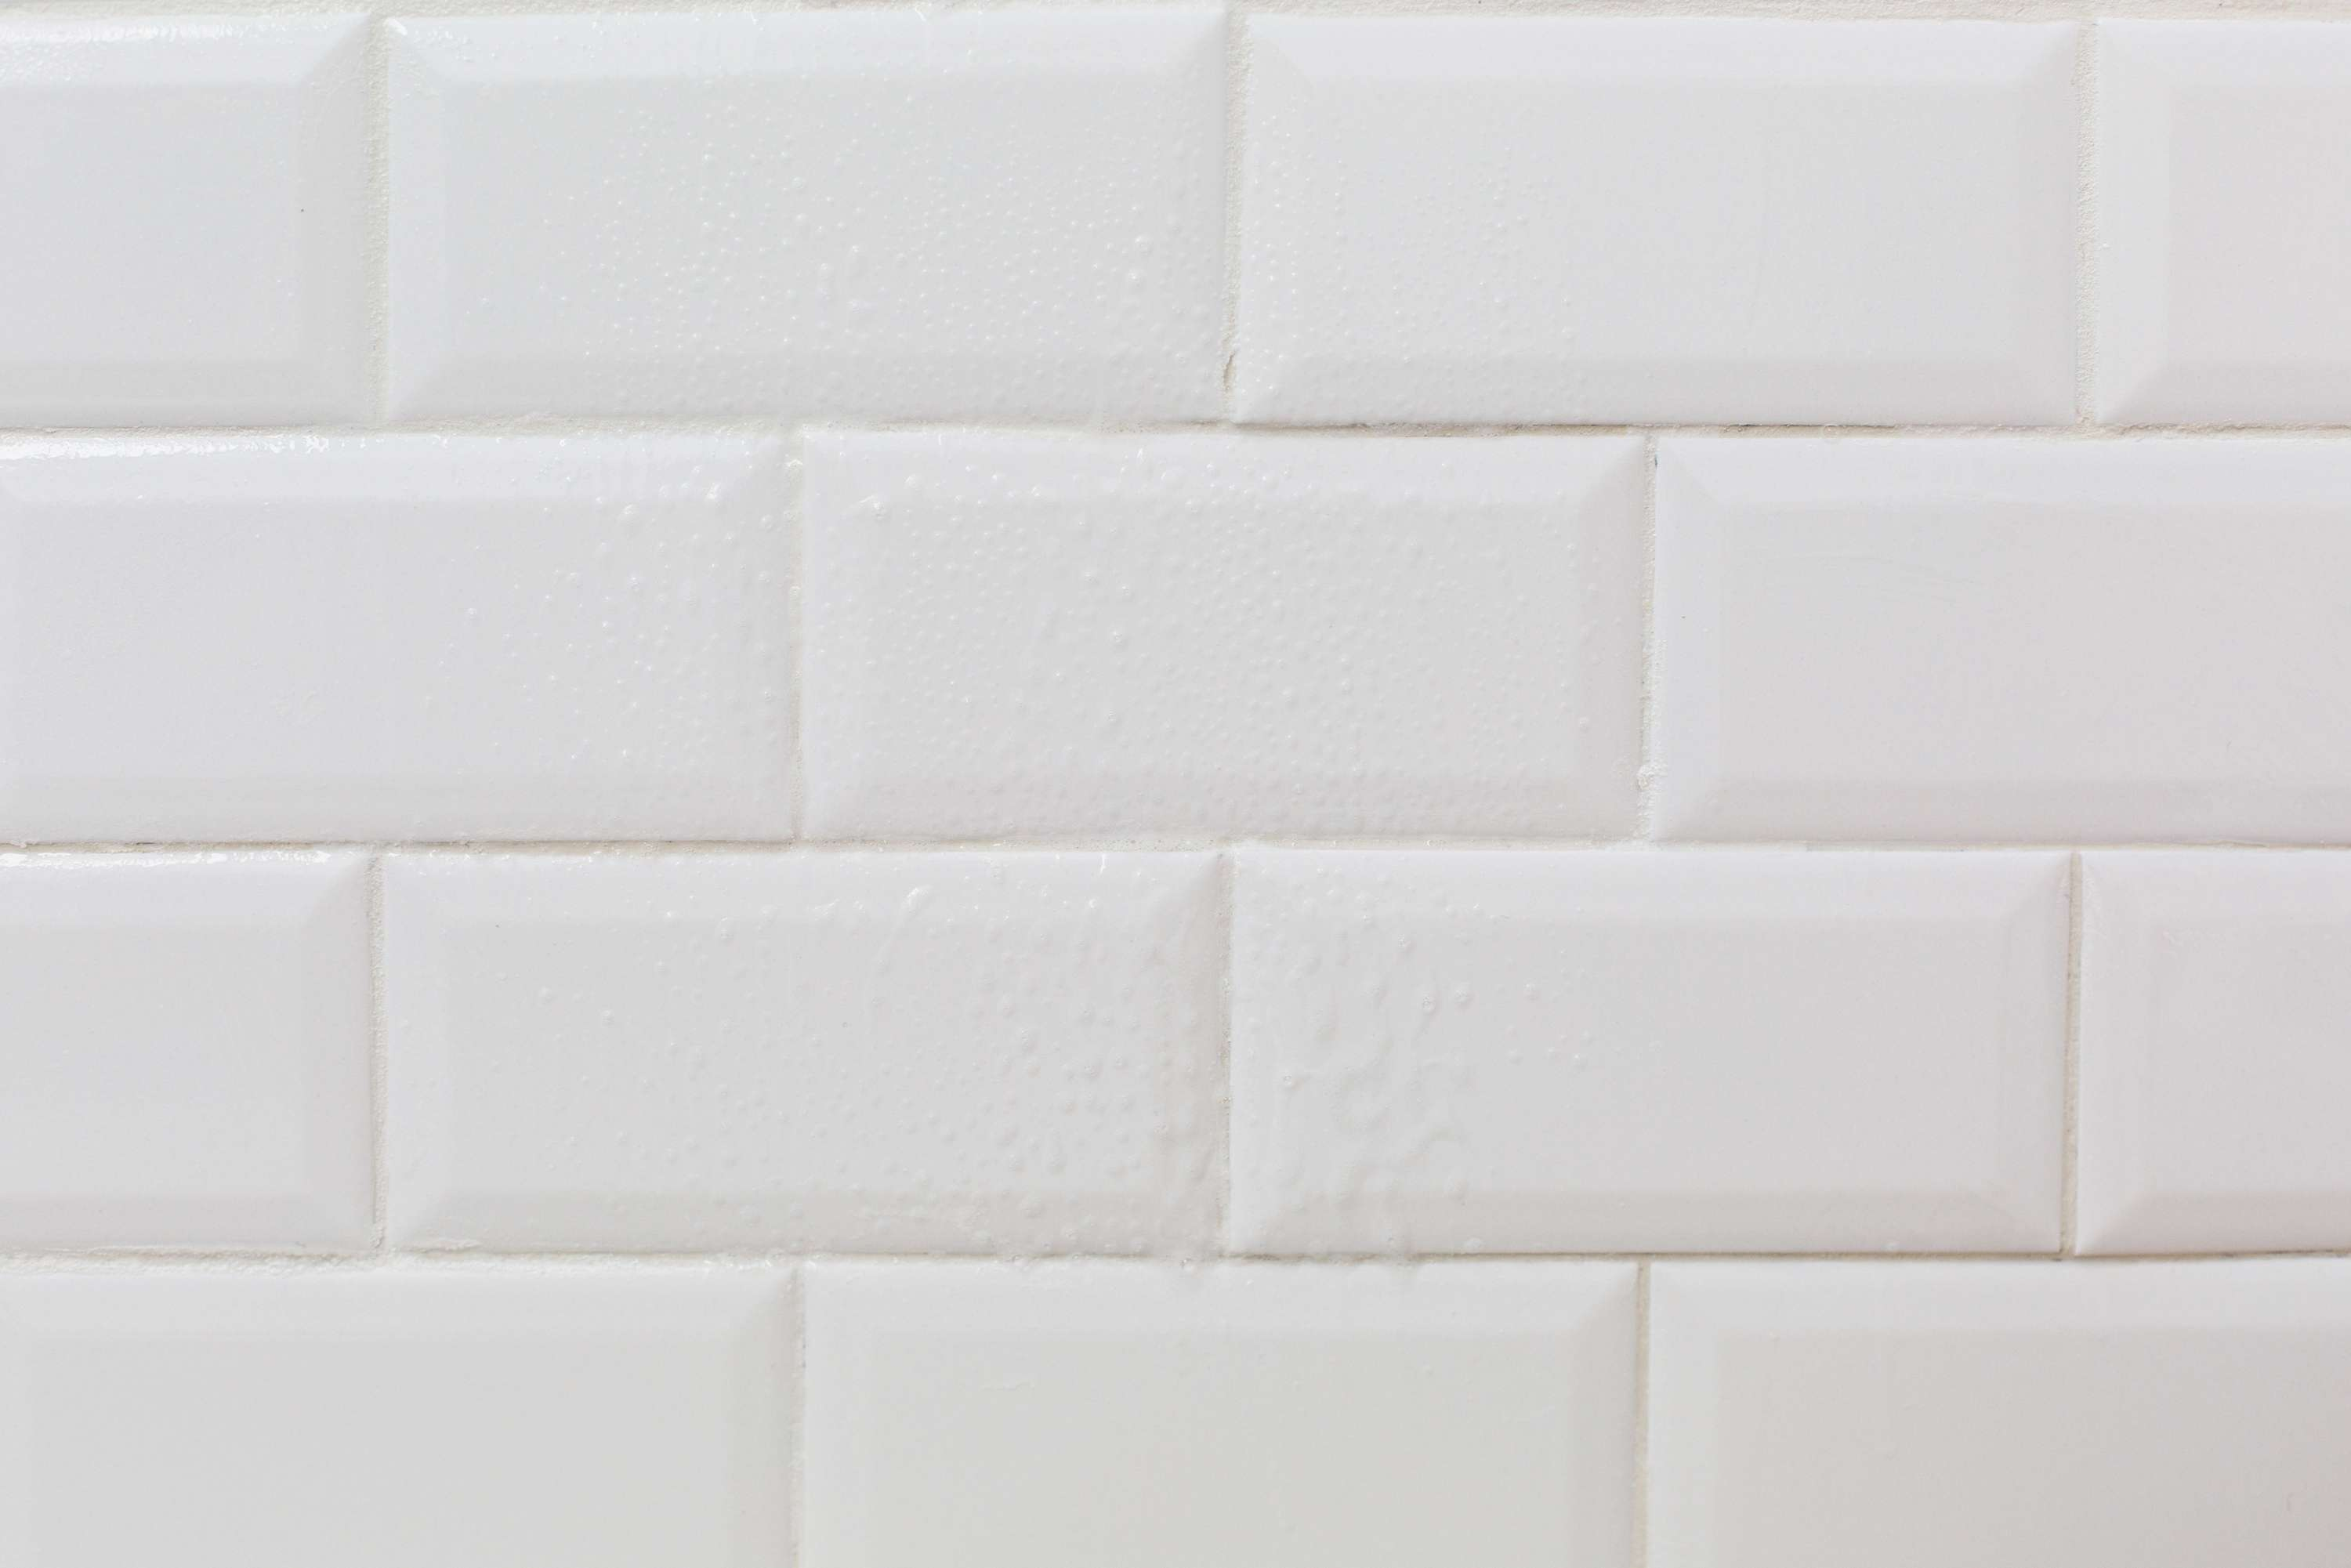 White tiled wall with cleaning solution sprayed on